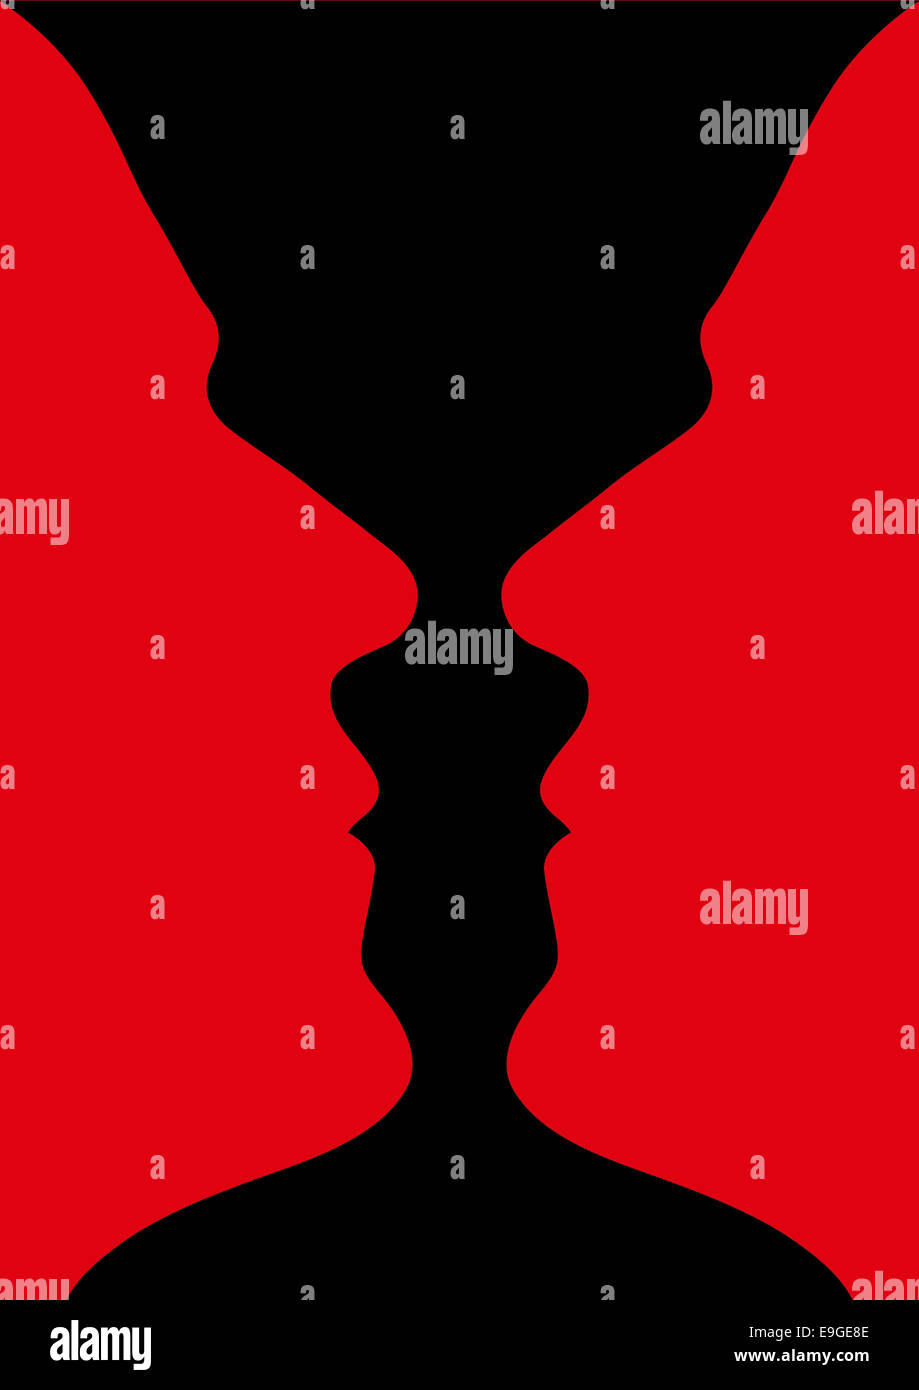 optical illusion of a vase with red black background or two people facing each other Stock Photo